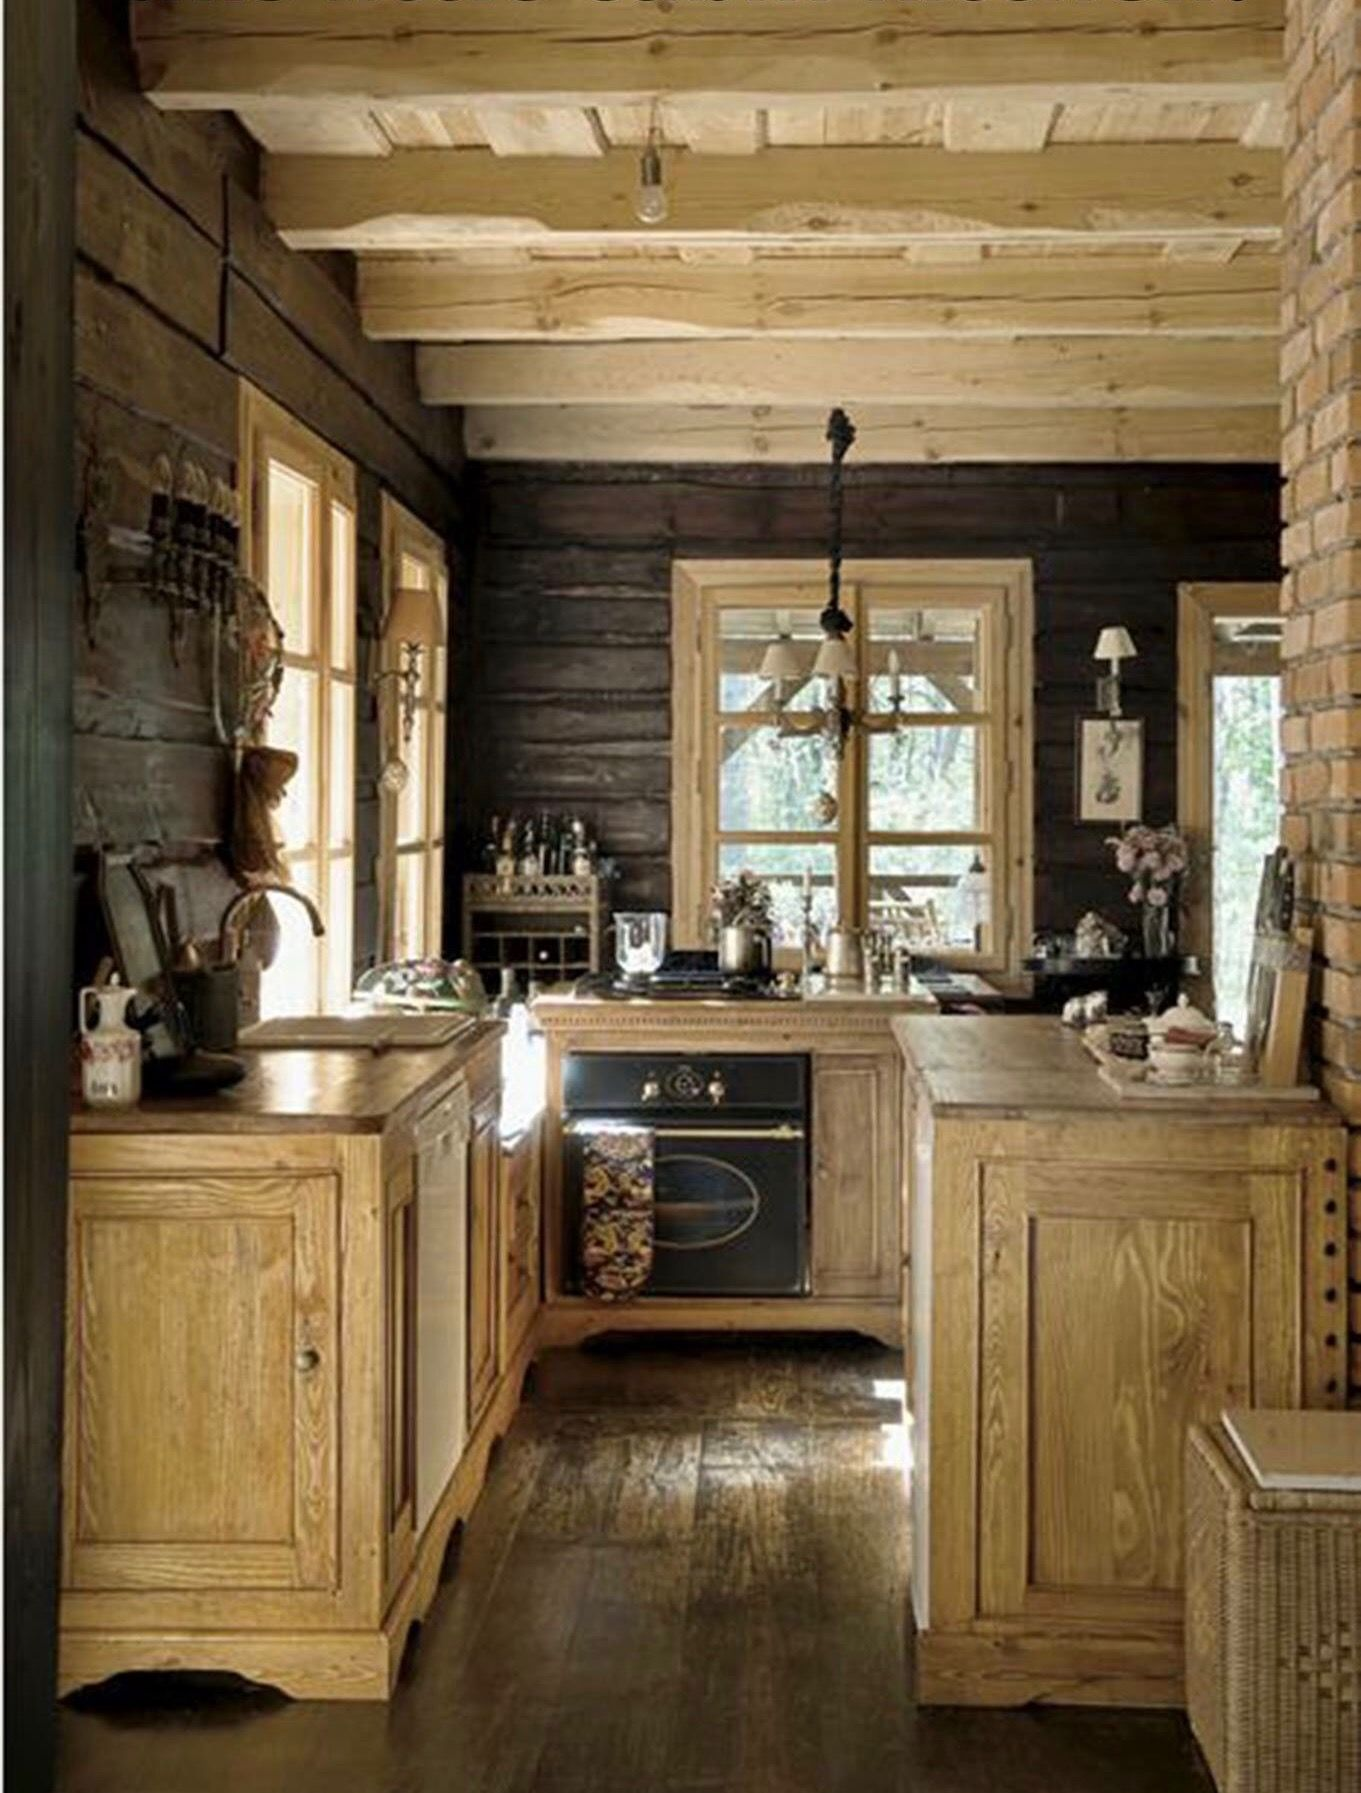 Rustic retreat small rustic cabin kitchen kitchen for Rustic retreat